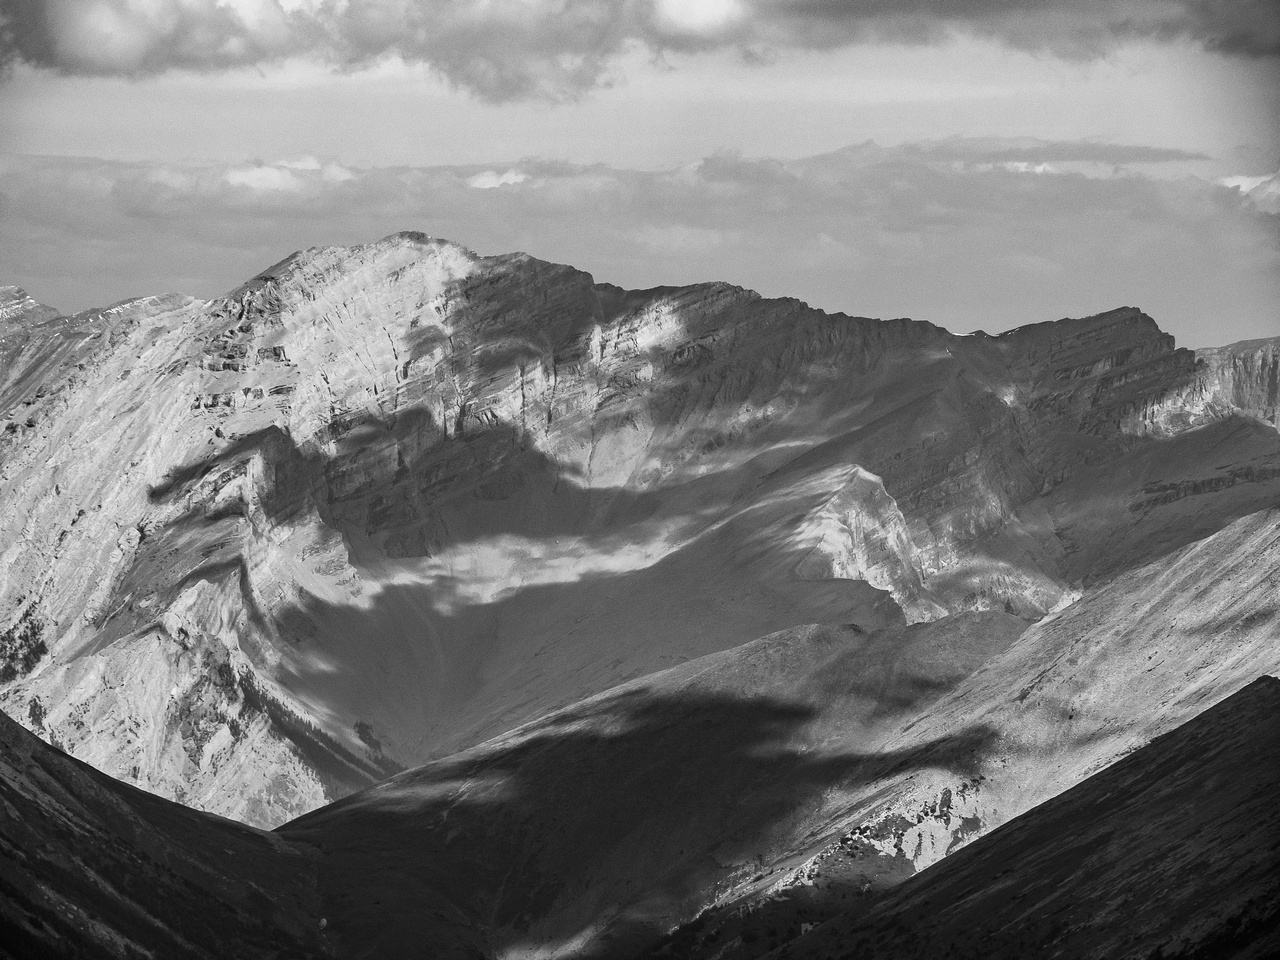 Mount Costigan is a giant peak in the Ghost Wilderness Area to the north of Townsend.